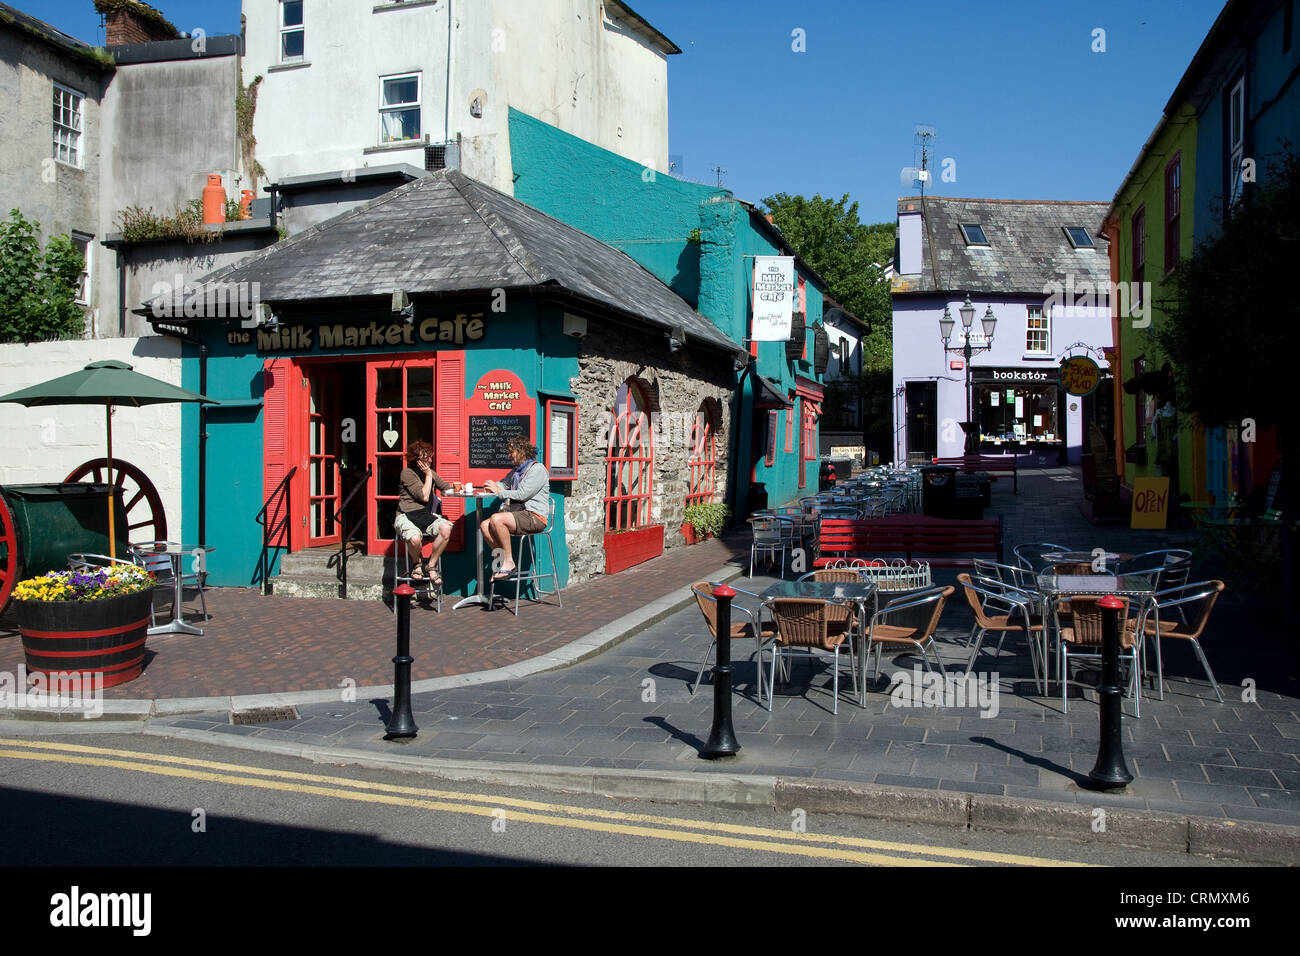 2020 Fit Speed Dating Kinsale (Ireland) - confx.co.uk